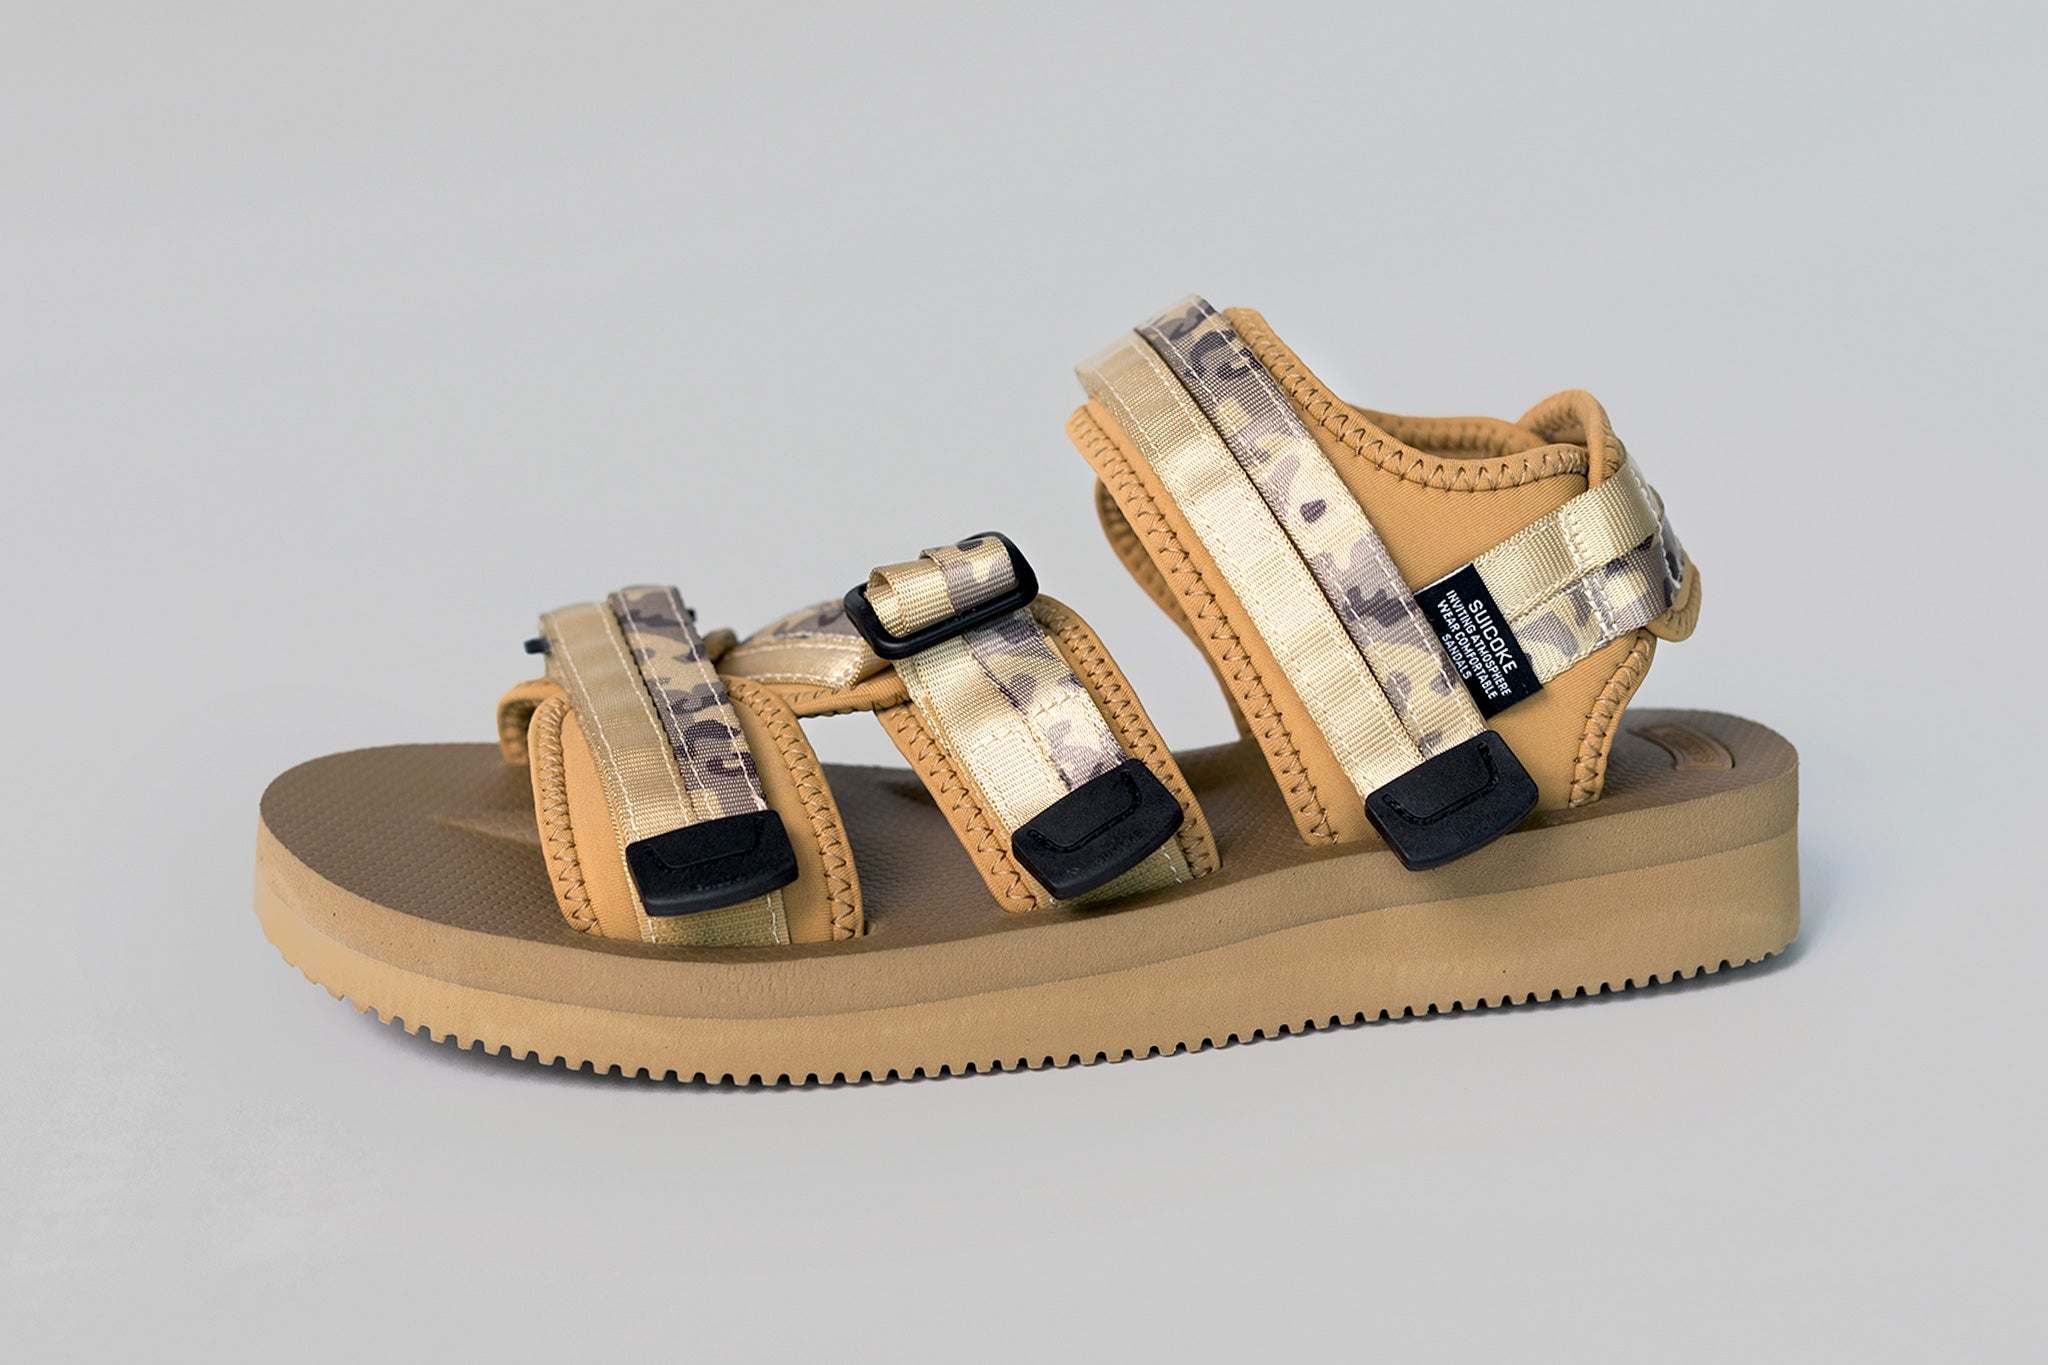 HIGHSNOBIETY X SUICOKE - SANDALS